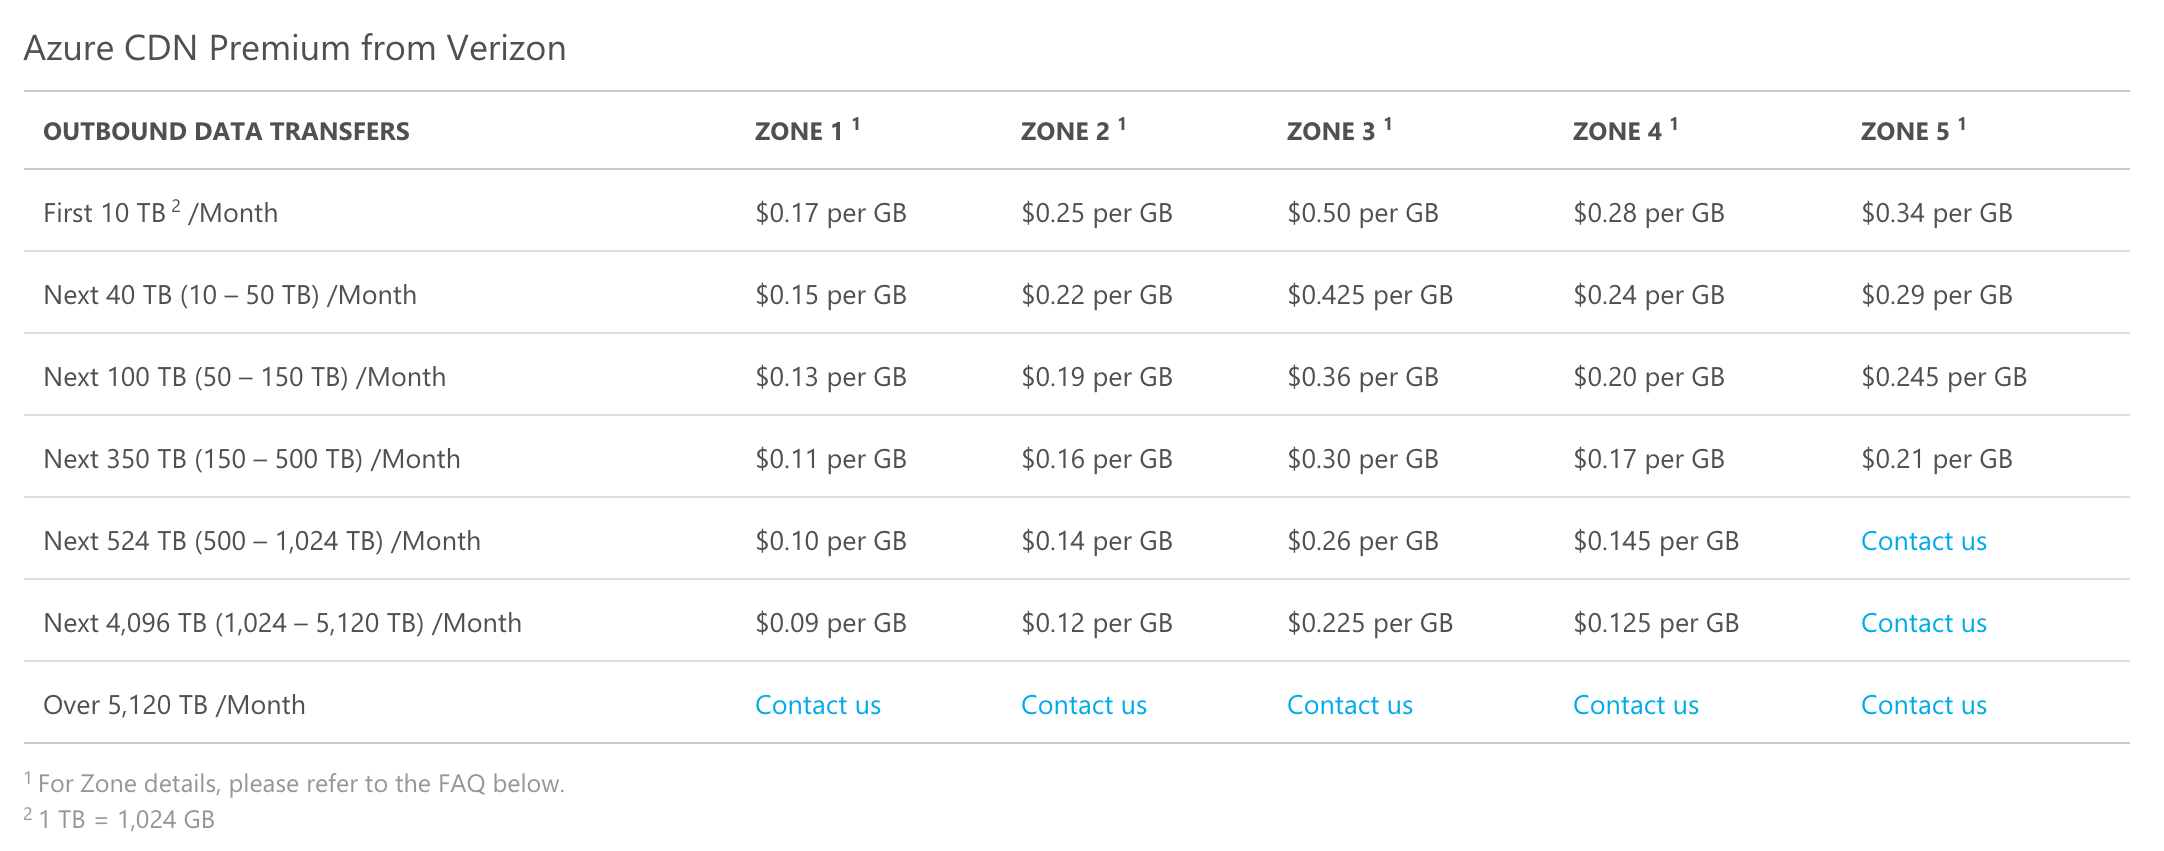 azure cdn pricing verizon premium